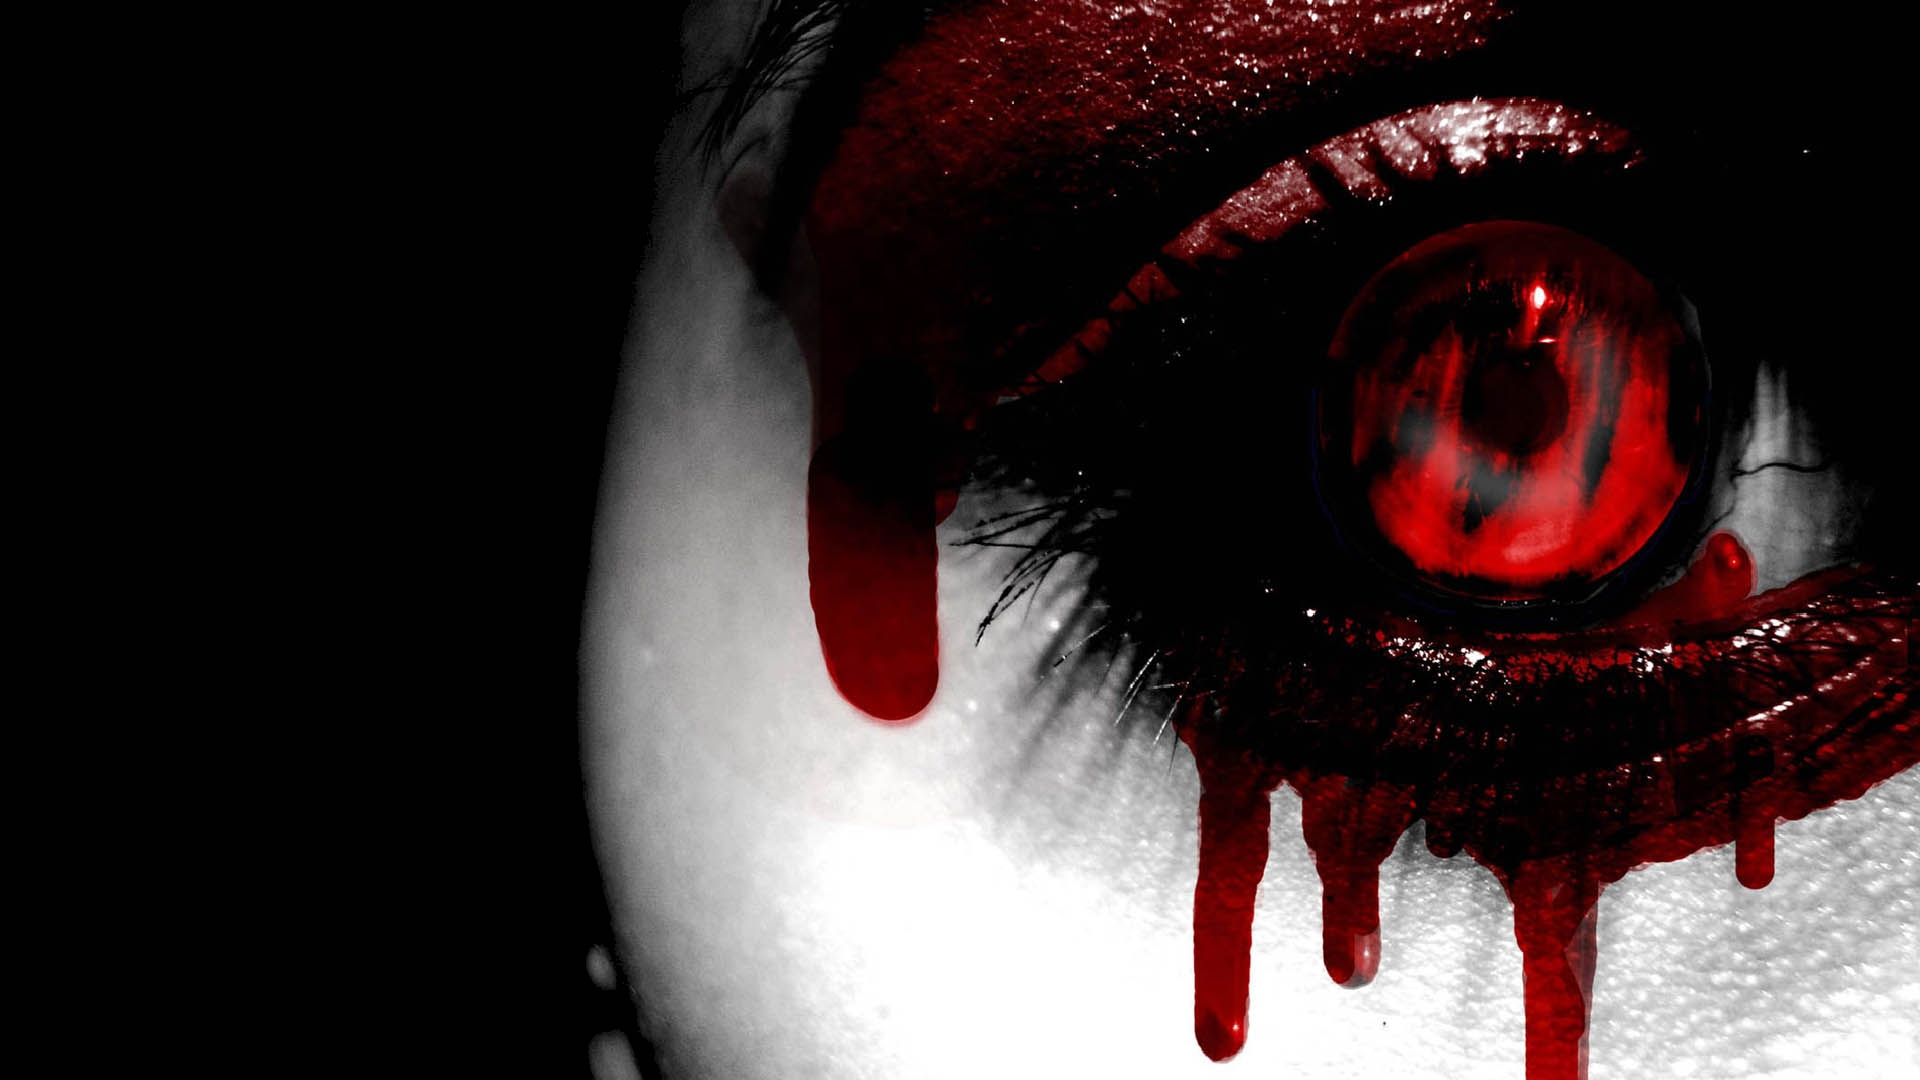 Dark Blood Wallpaper Gothic Wallpapers Images Dark Gothic Wallpaper Hd Wallpaper And